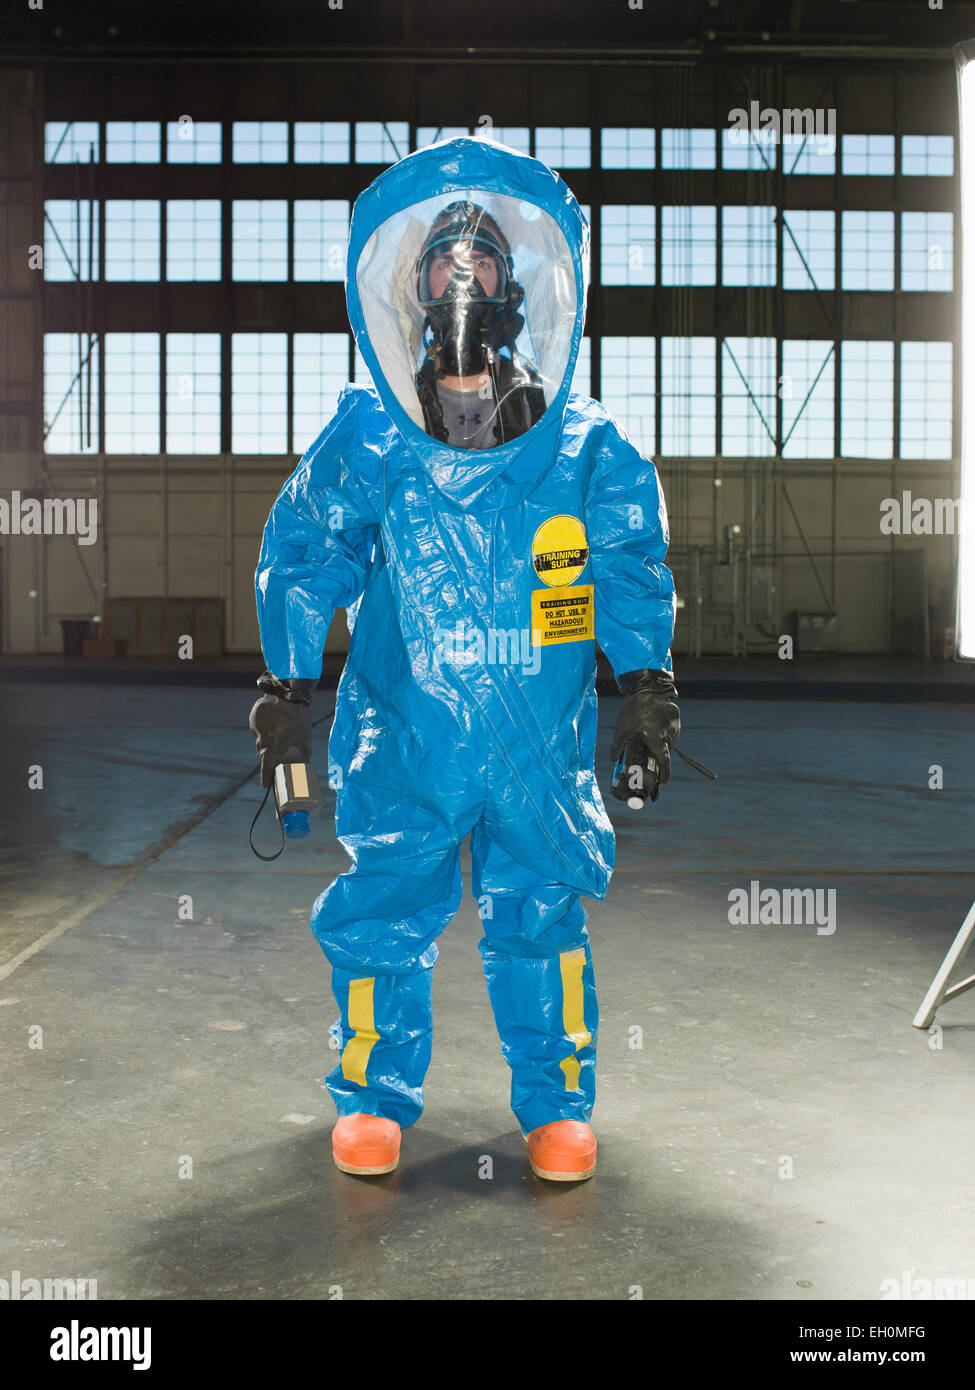 A National Guardsman wears a Nuclear radiation suit during training at an air base in South Dakota. - Stock Image